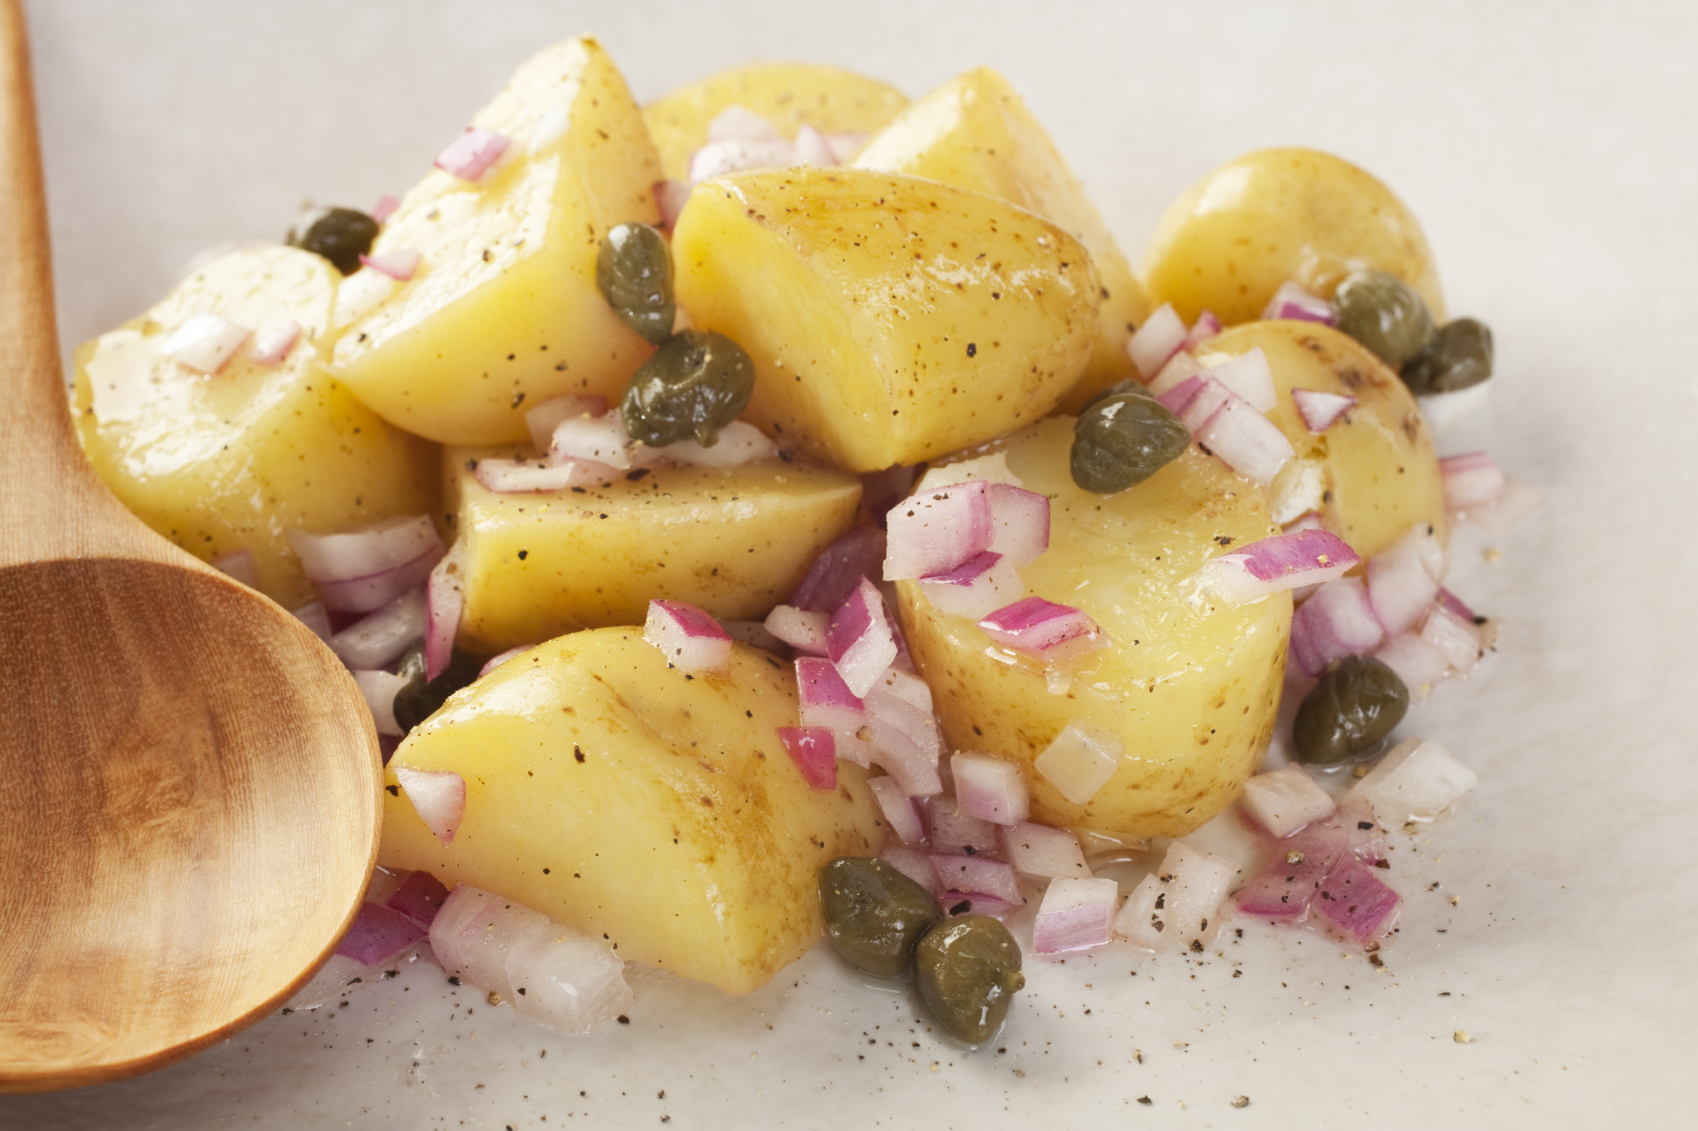 Potato salad with capers and mustard: Insalata tal-patata bil-kappar u l-mustarda